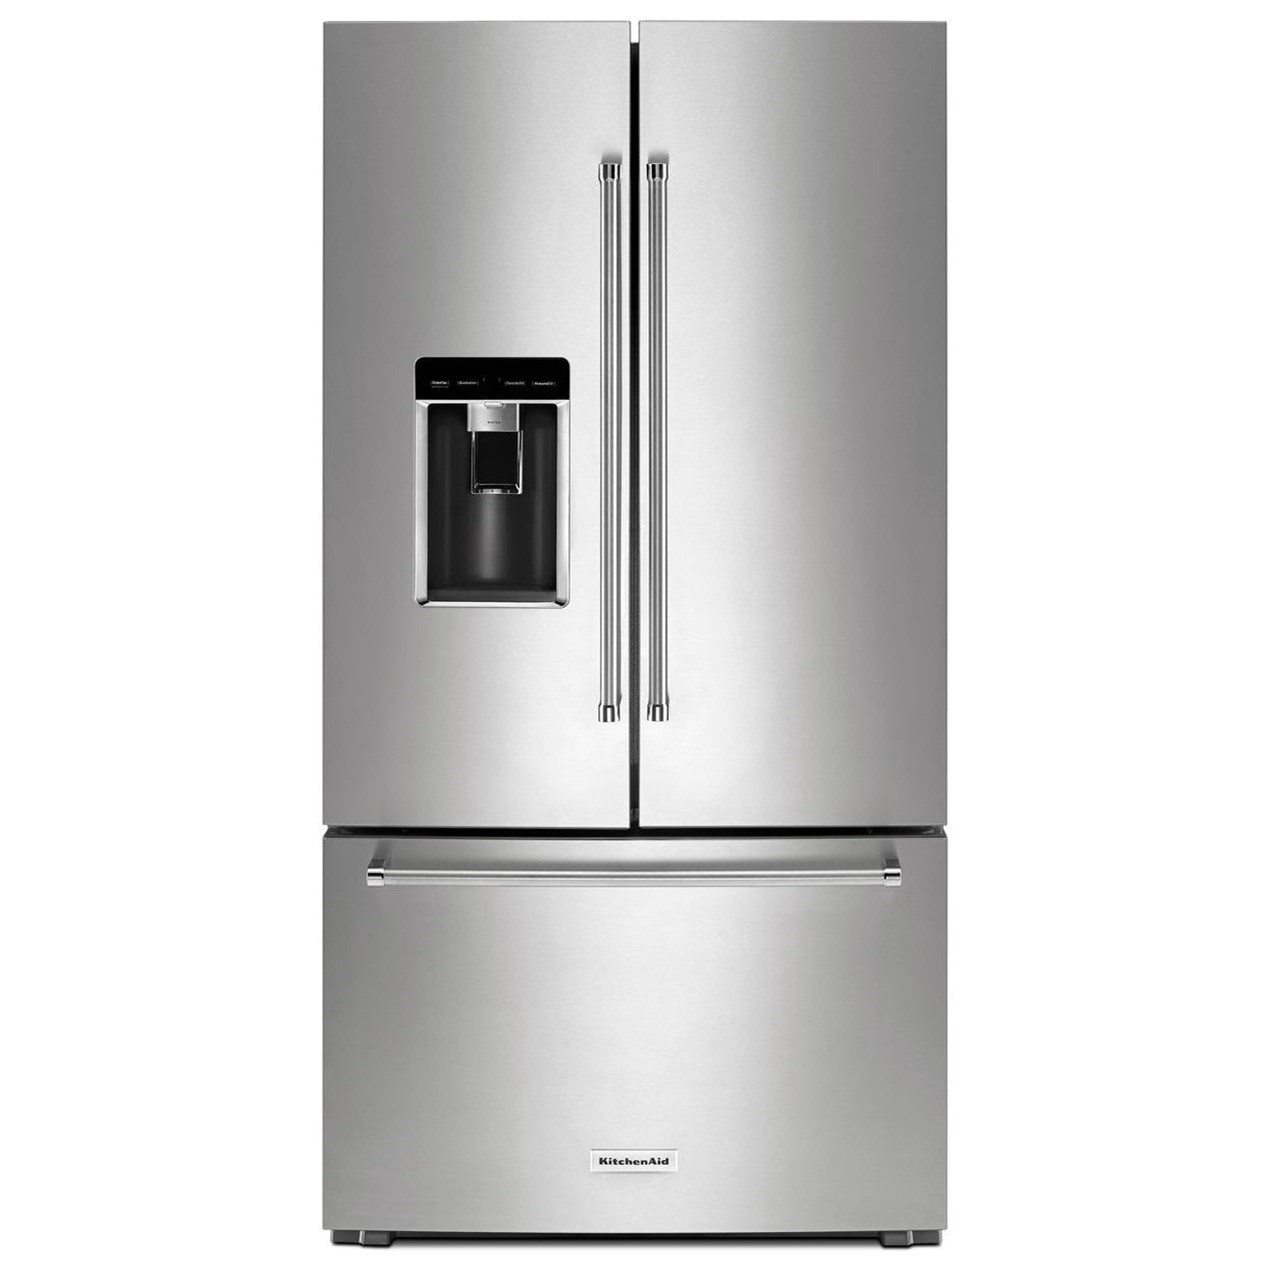 Superieur KitchenAid KitchenAid French Door Refrigerators23.8 Cu.Ft. 36